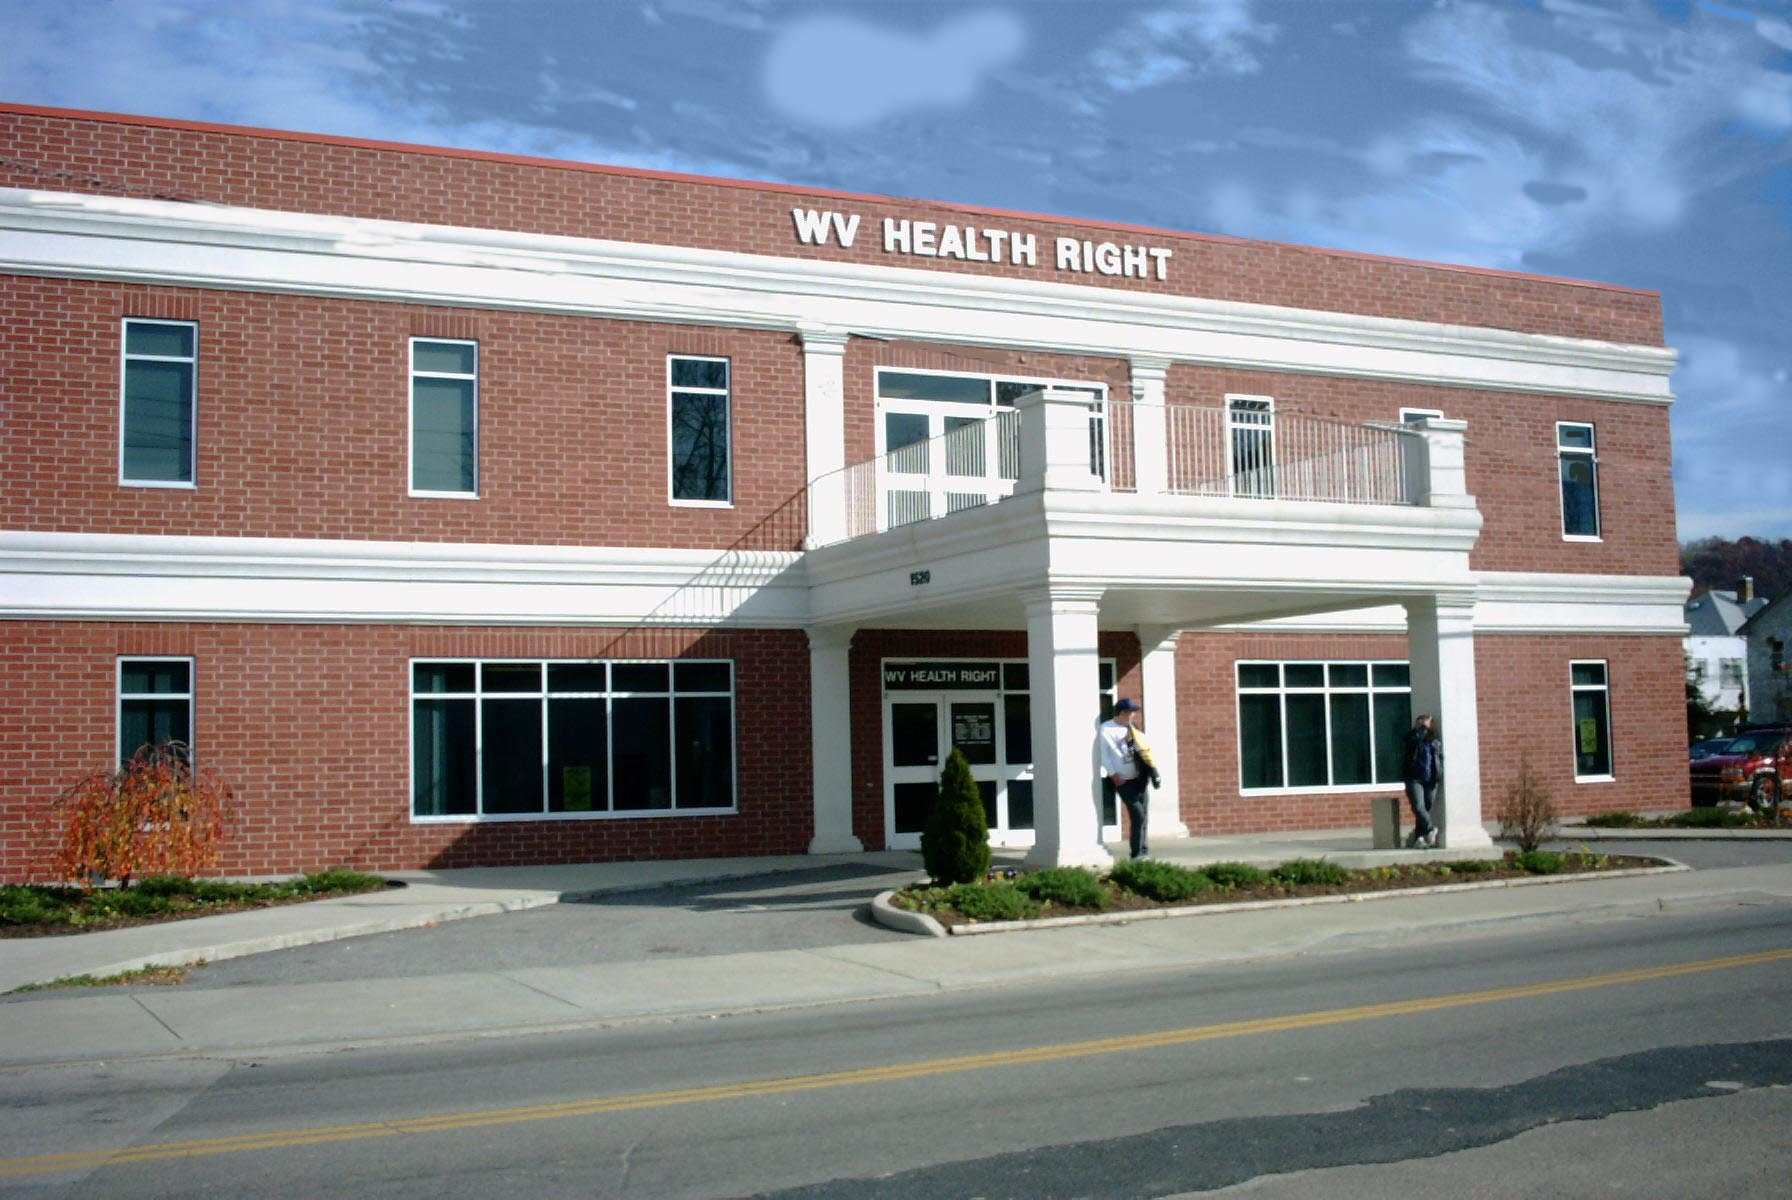 West Virginia Health Right Free & Charitable Clinic